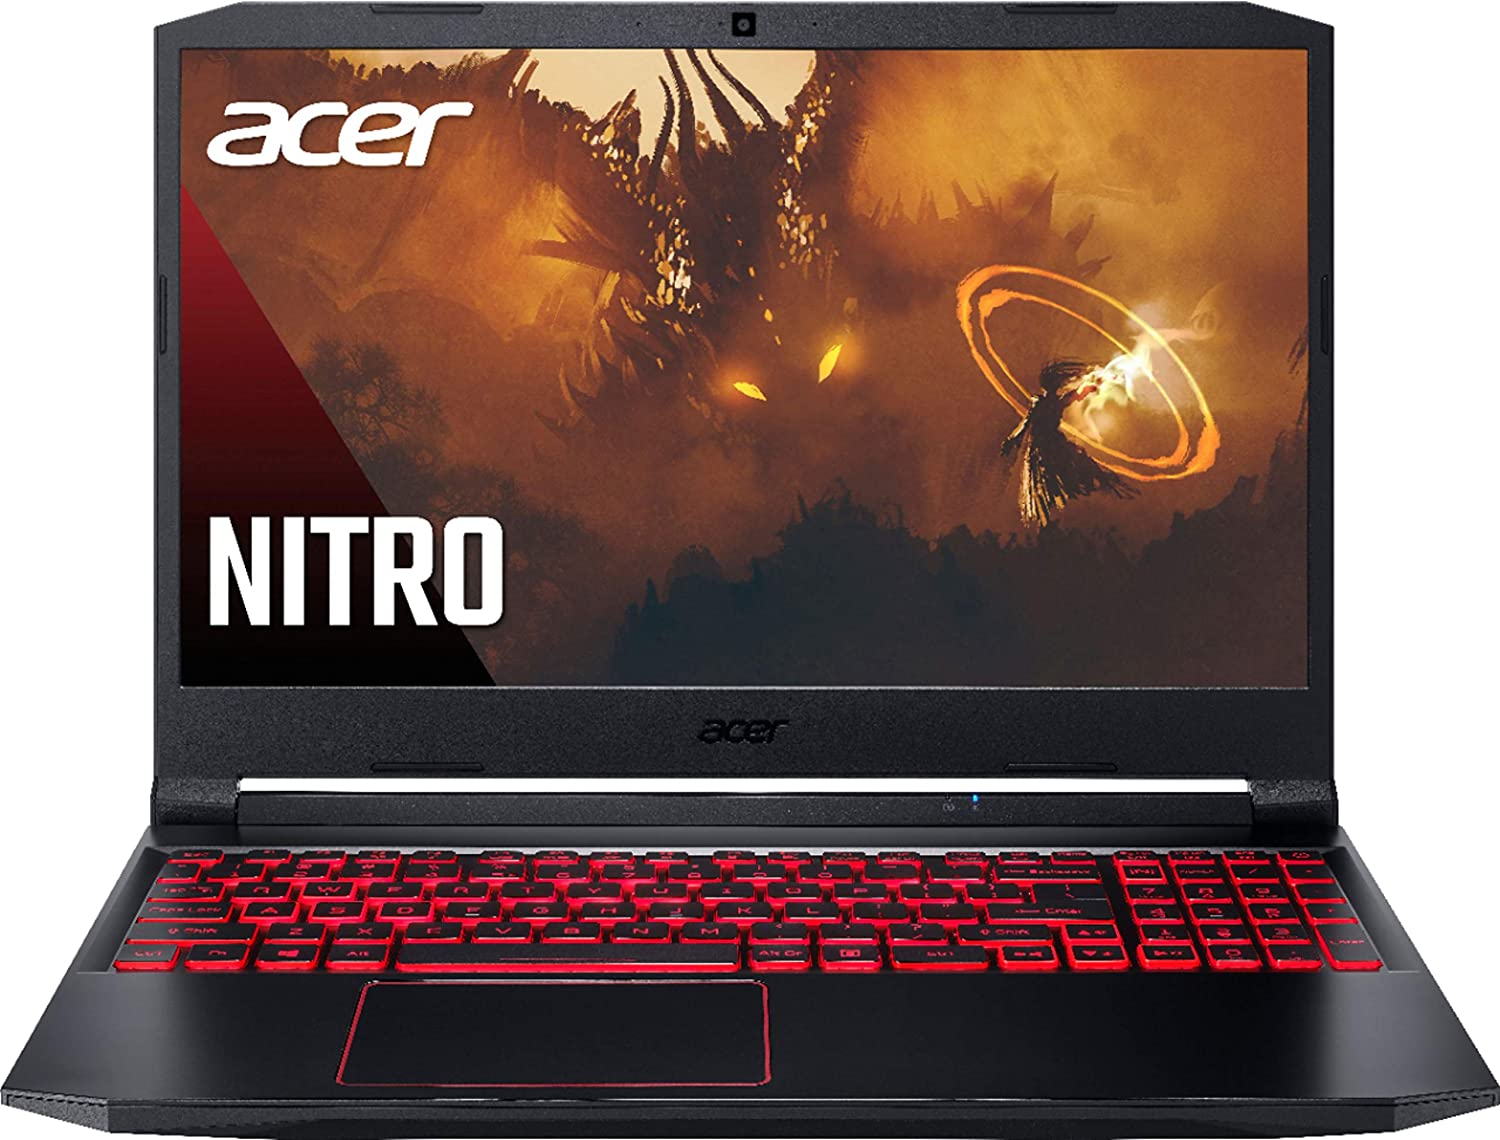 "Acer Nitro 5 15.6"" Laptop AMD Ryzen 5 4600H NVIDIA GeForce GTX 1650 with 4GB GDDR6 16GB DDR4 RAM, 512GB PCIe SSD, Backlit Keyboard, Windows 10 Home Obsidian Black"